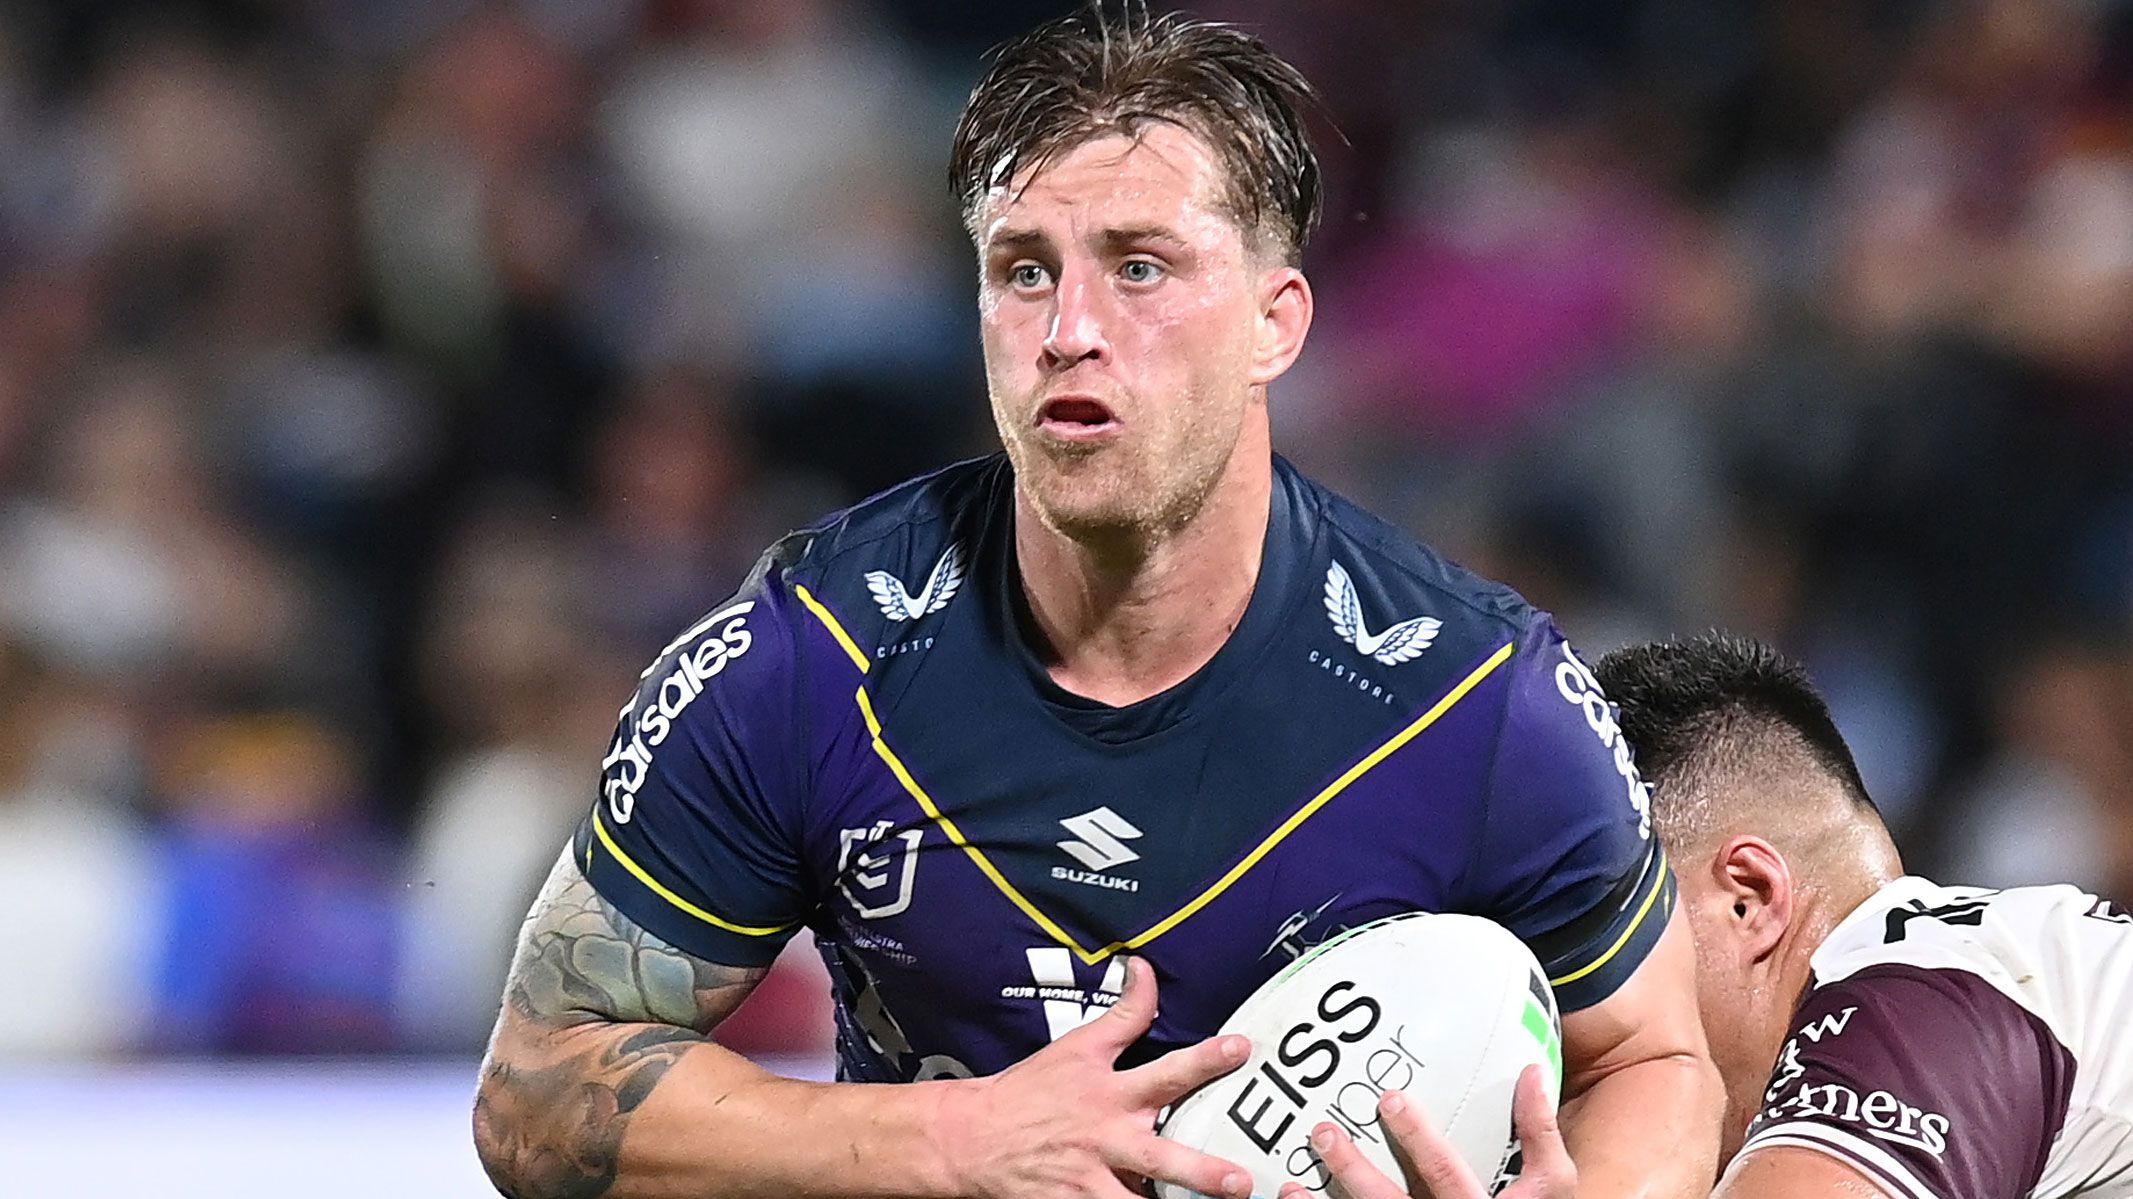 Cameron Munster runs the ball in the Storm's qualifying final win over Manly.